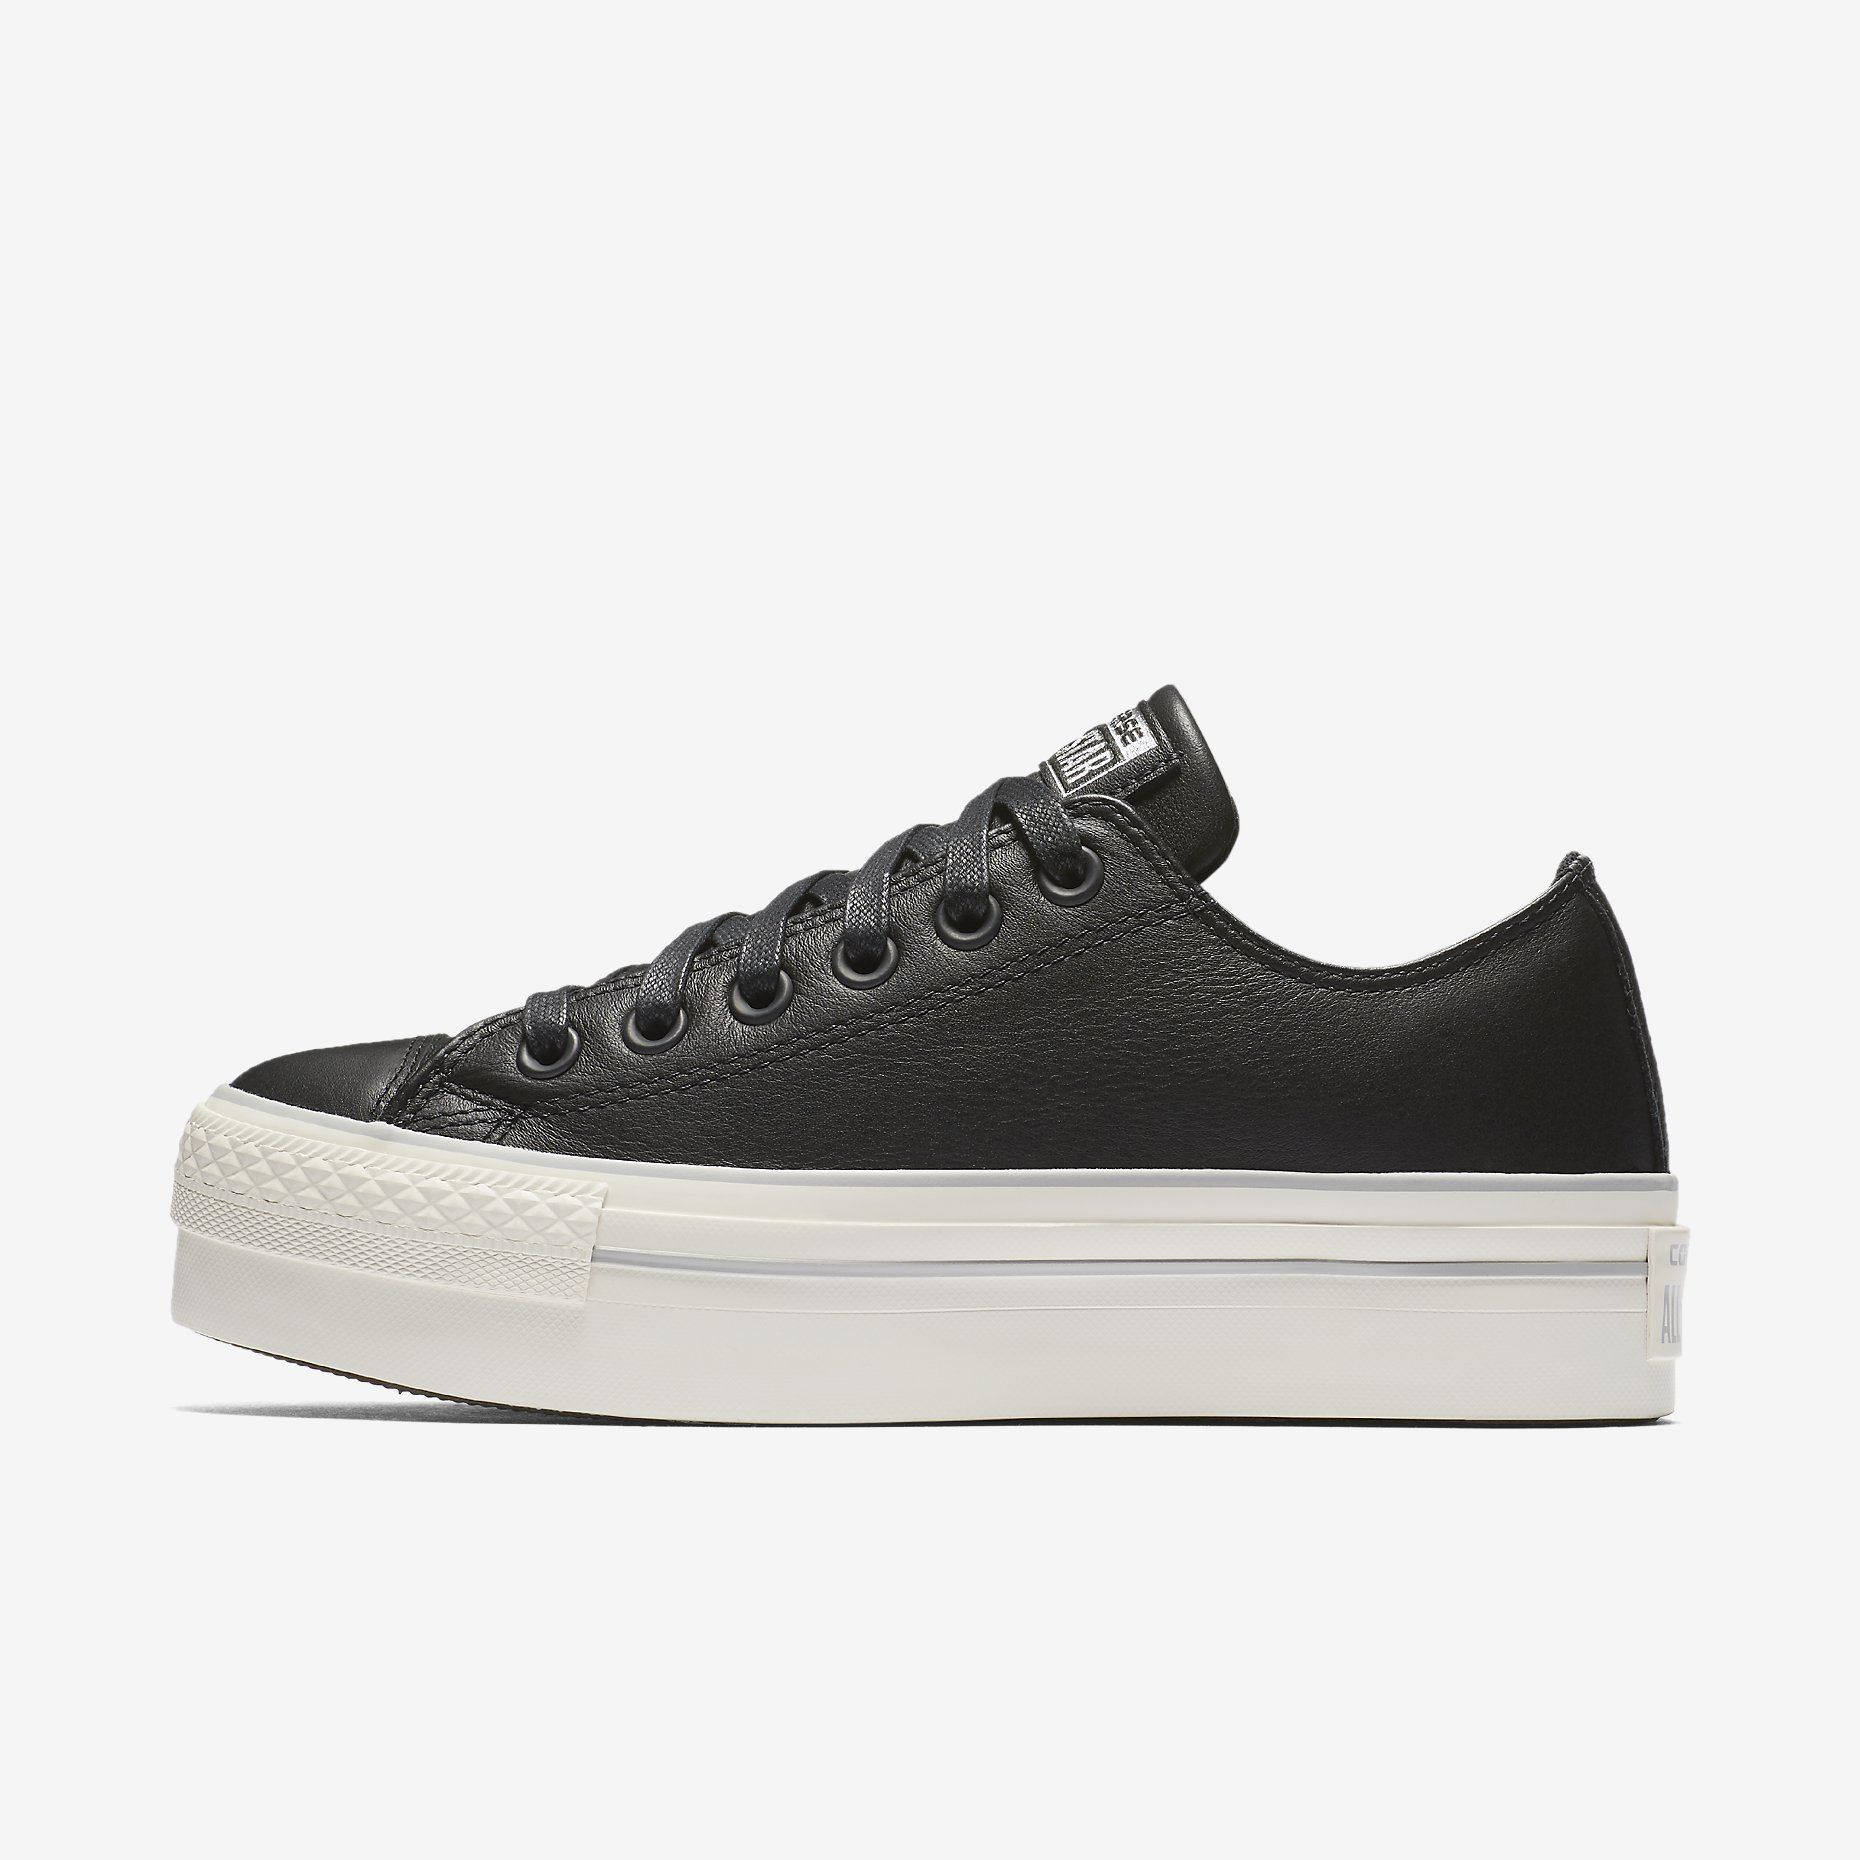 6d888e2c44d7 leather low top platform converse chuck taylor all star sneaker in black